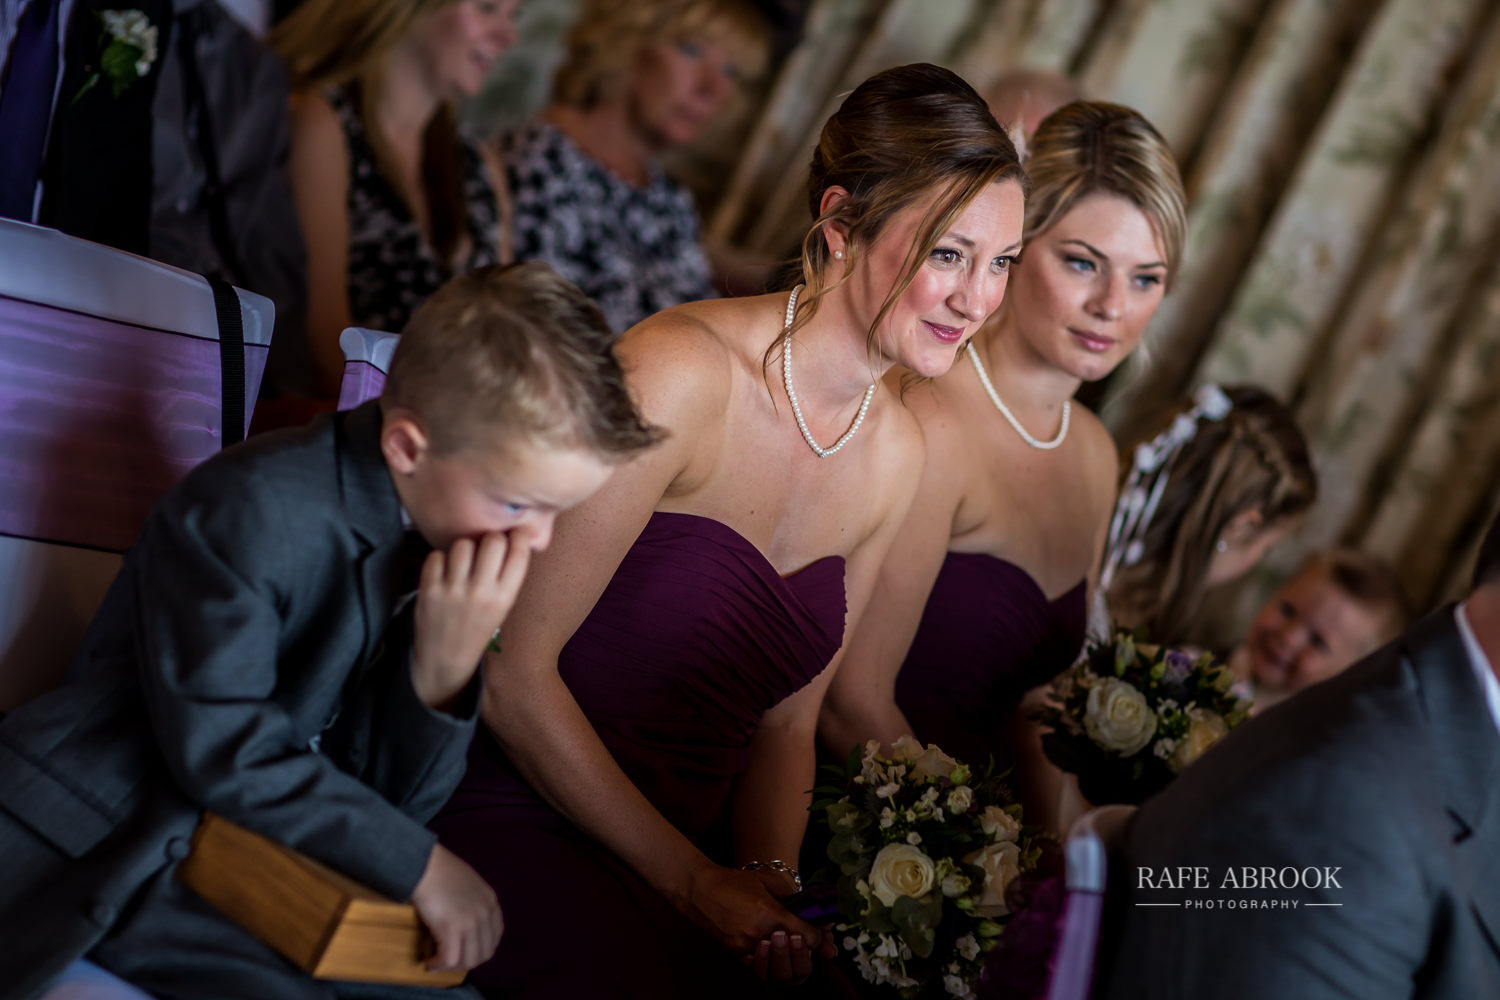 cumberwell park wedding bath bradford on avon wiltshire hertfordshire wedding photographer-1207.jpg